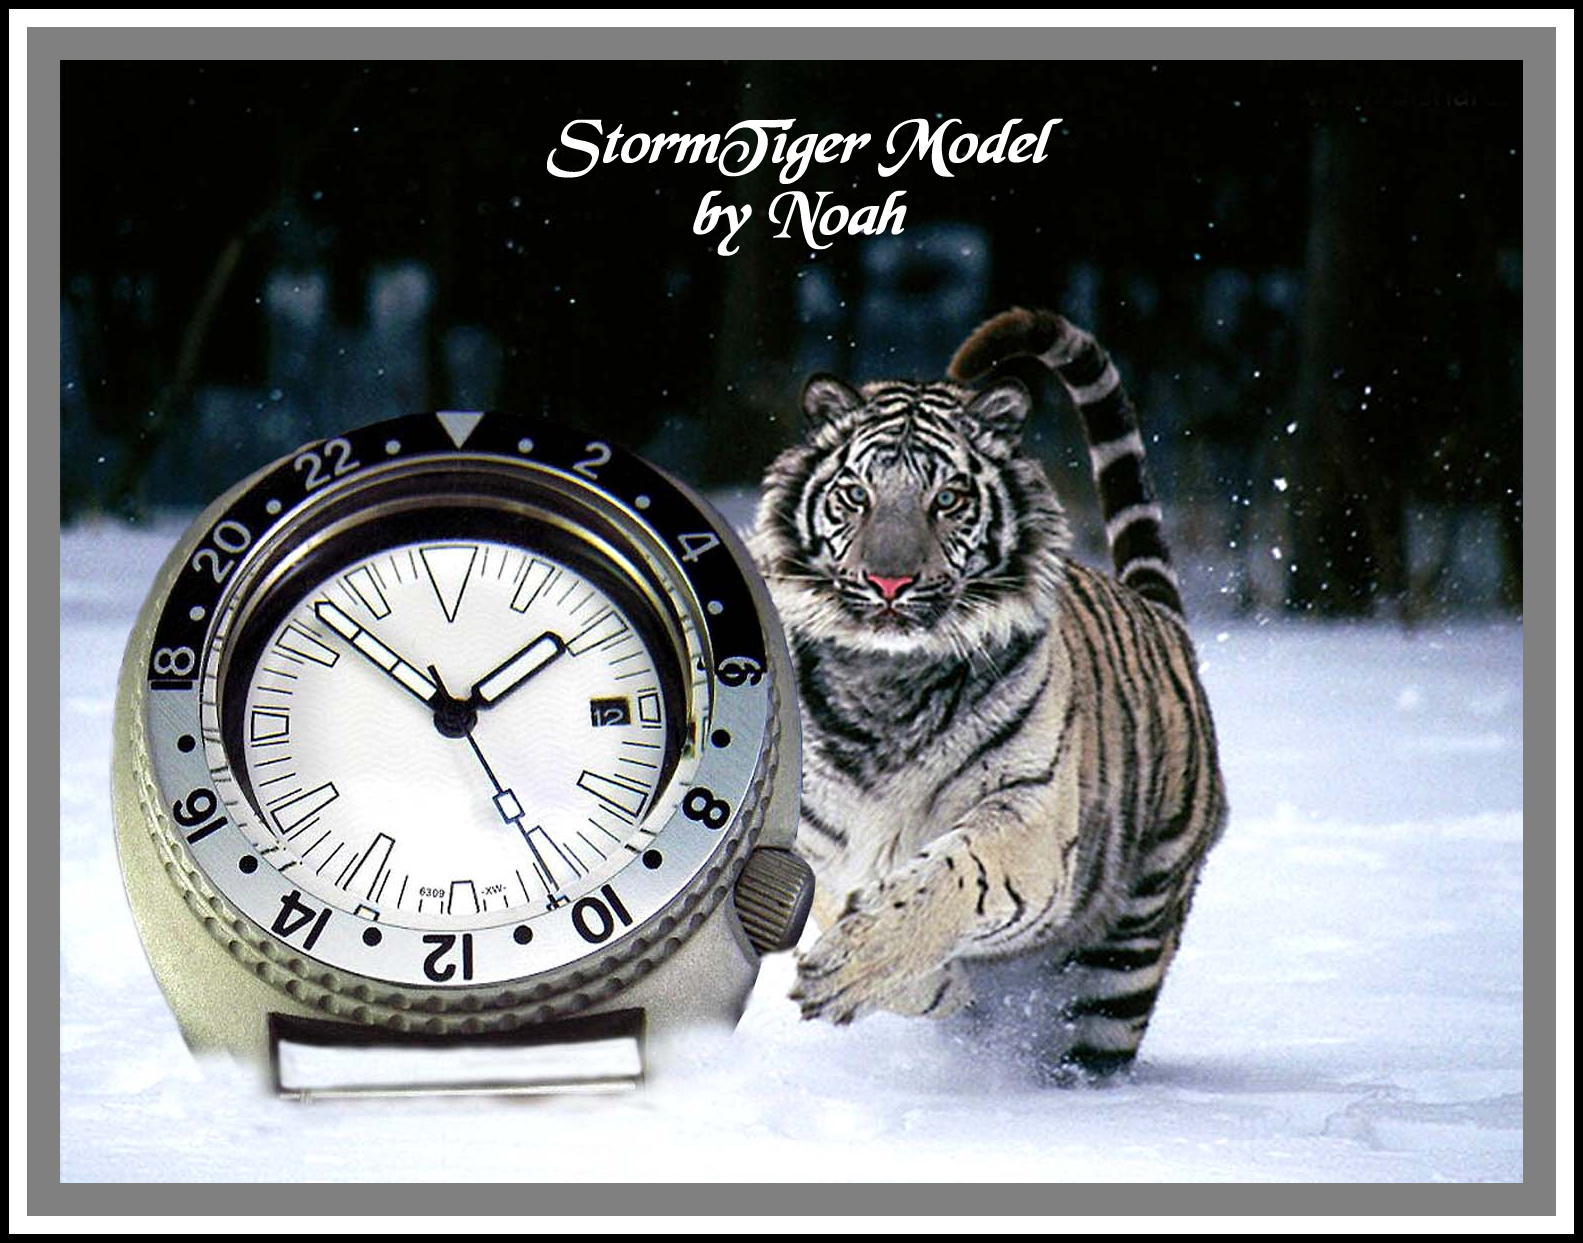 Snow Tiger Seiko 6309-7040